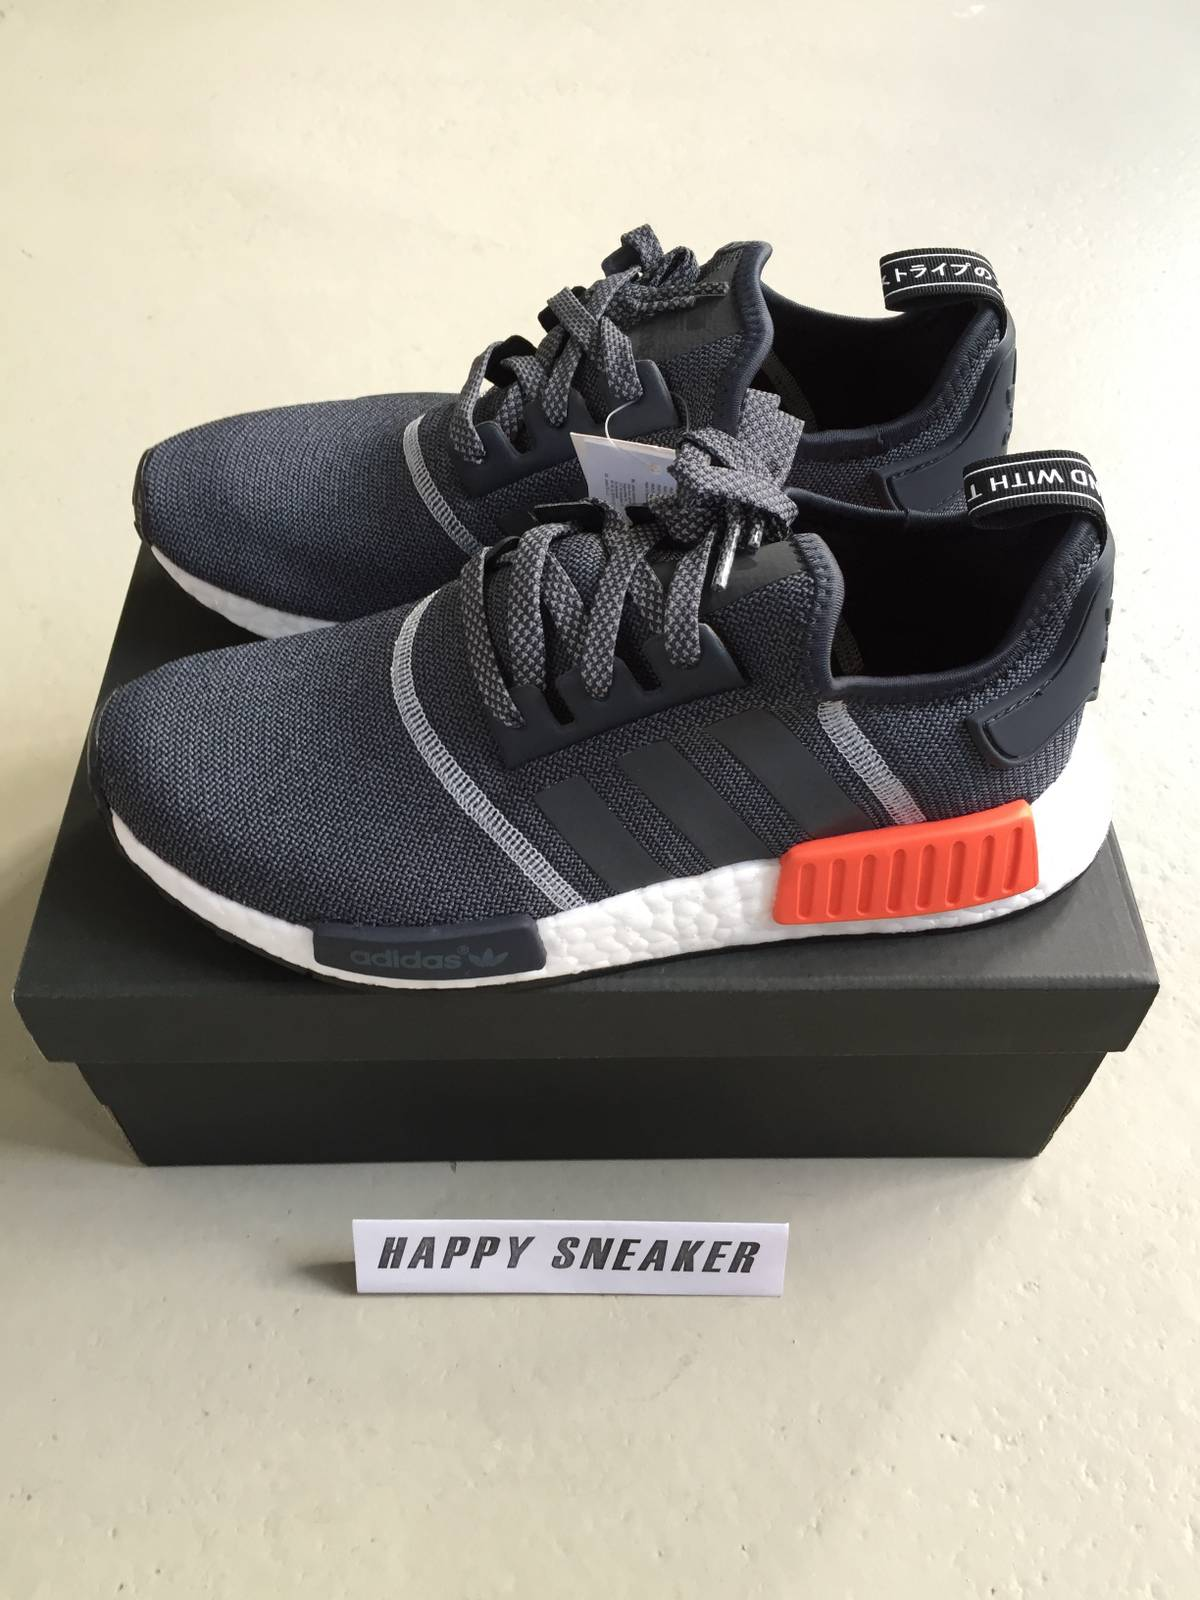 Cheap Adidas NMD R1 Primeknit Boost Sale Online 2017